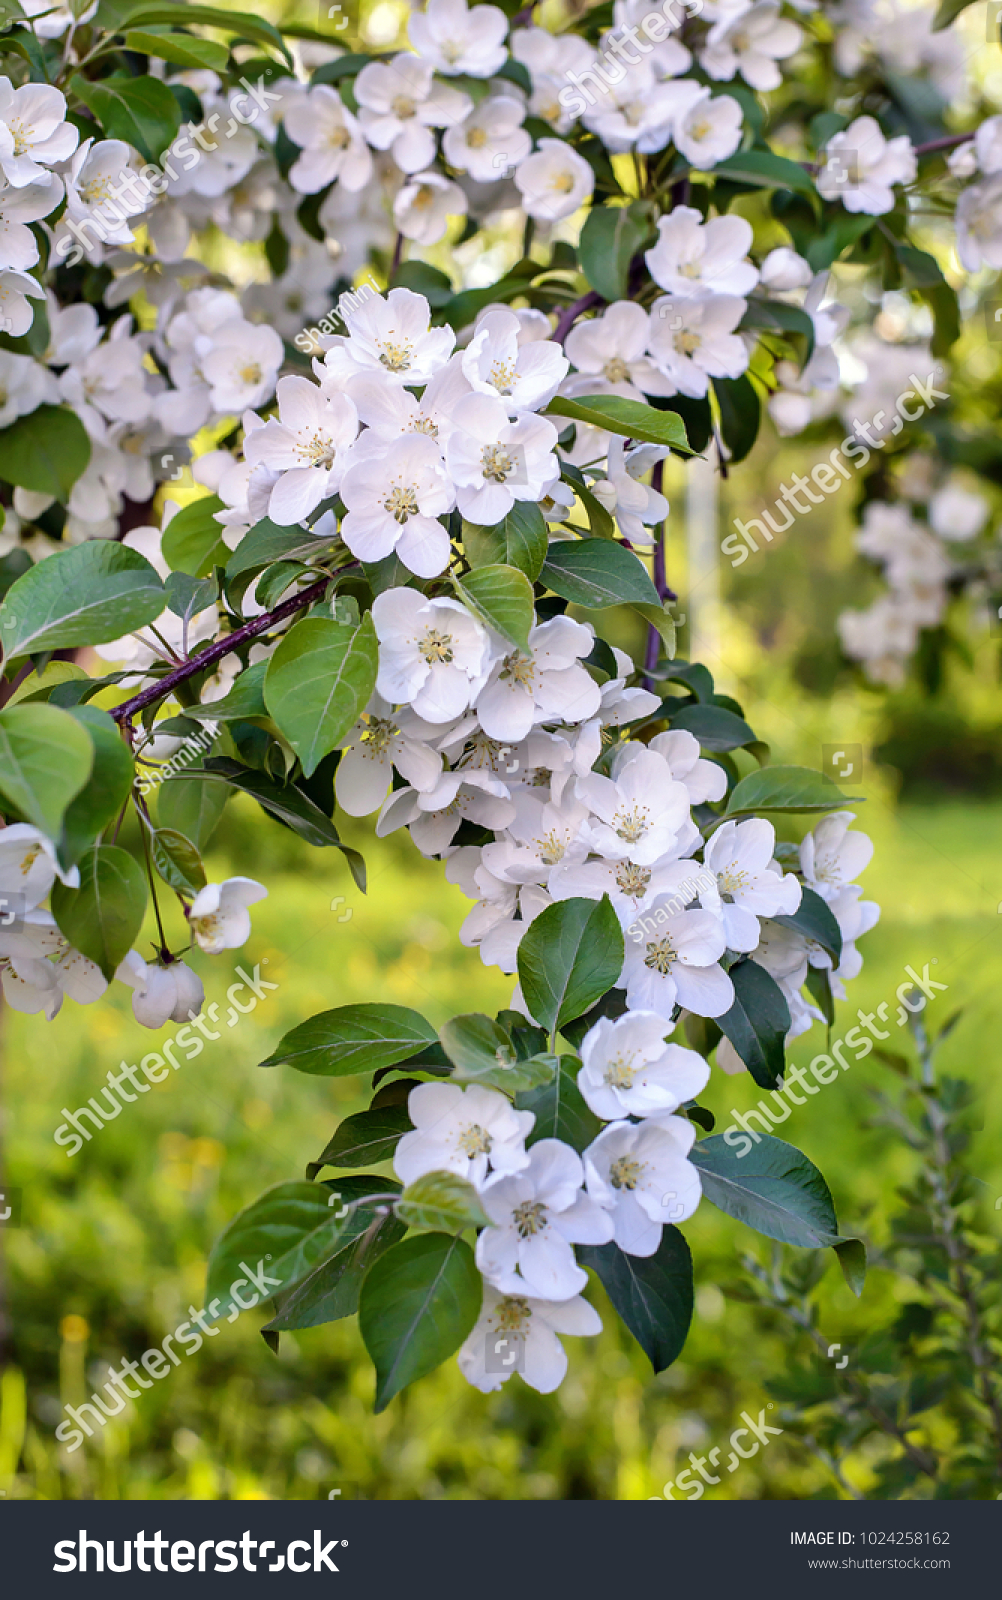 Spring Picture Beautiful Branch Of A Blossoming Apple Tree With